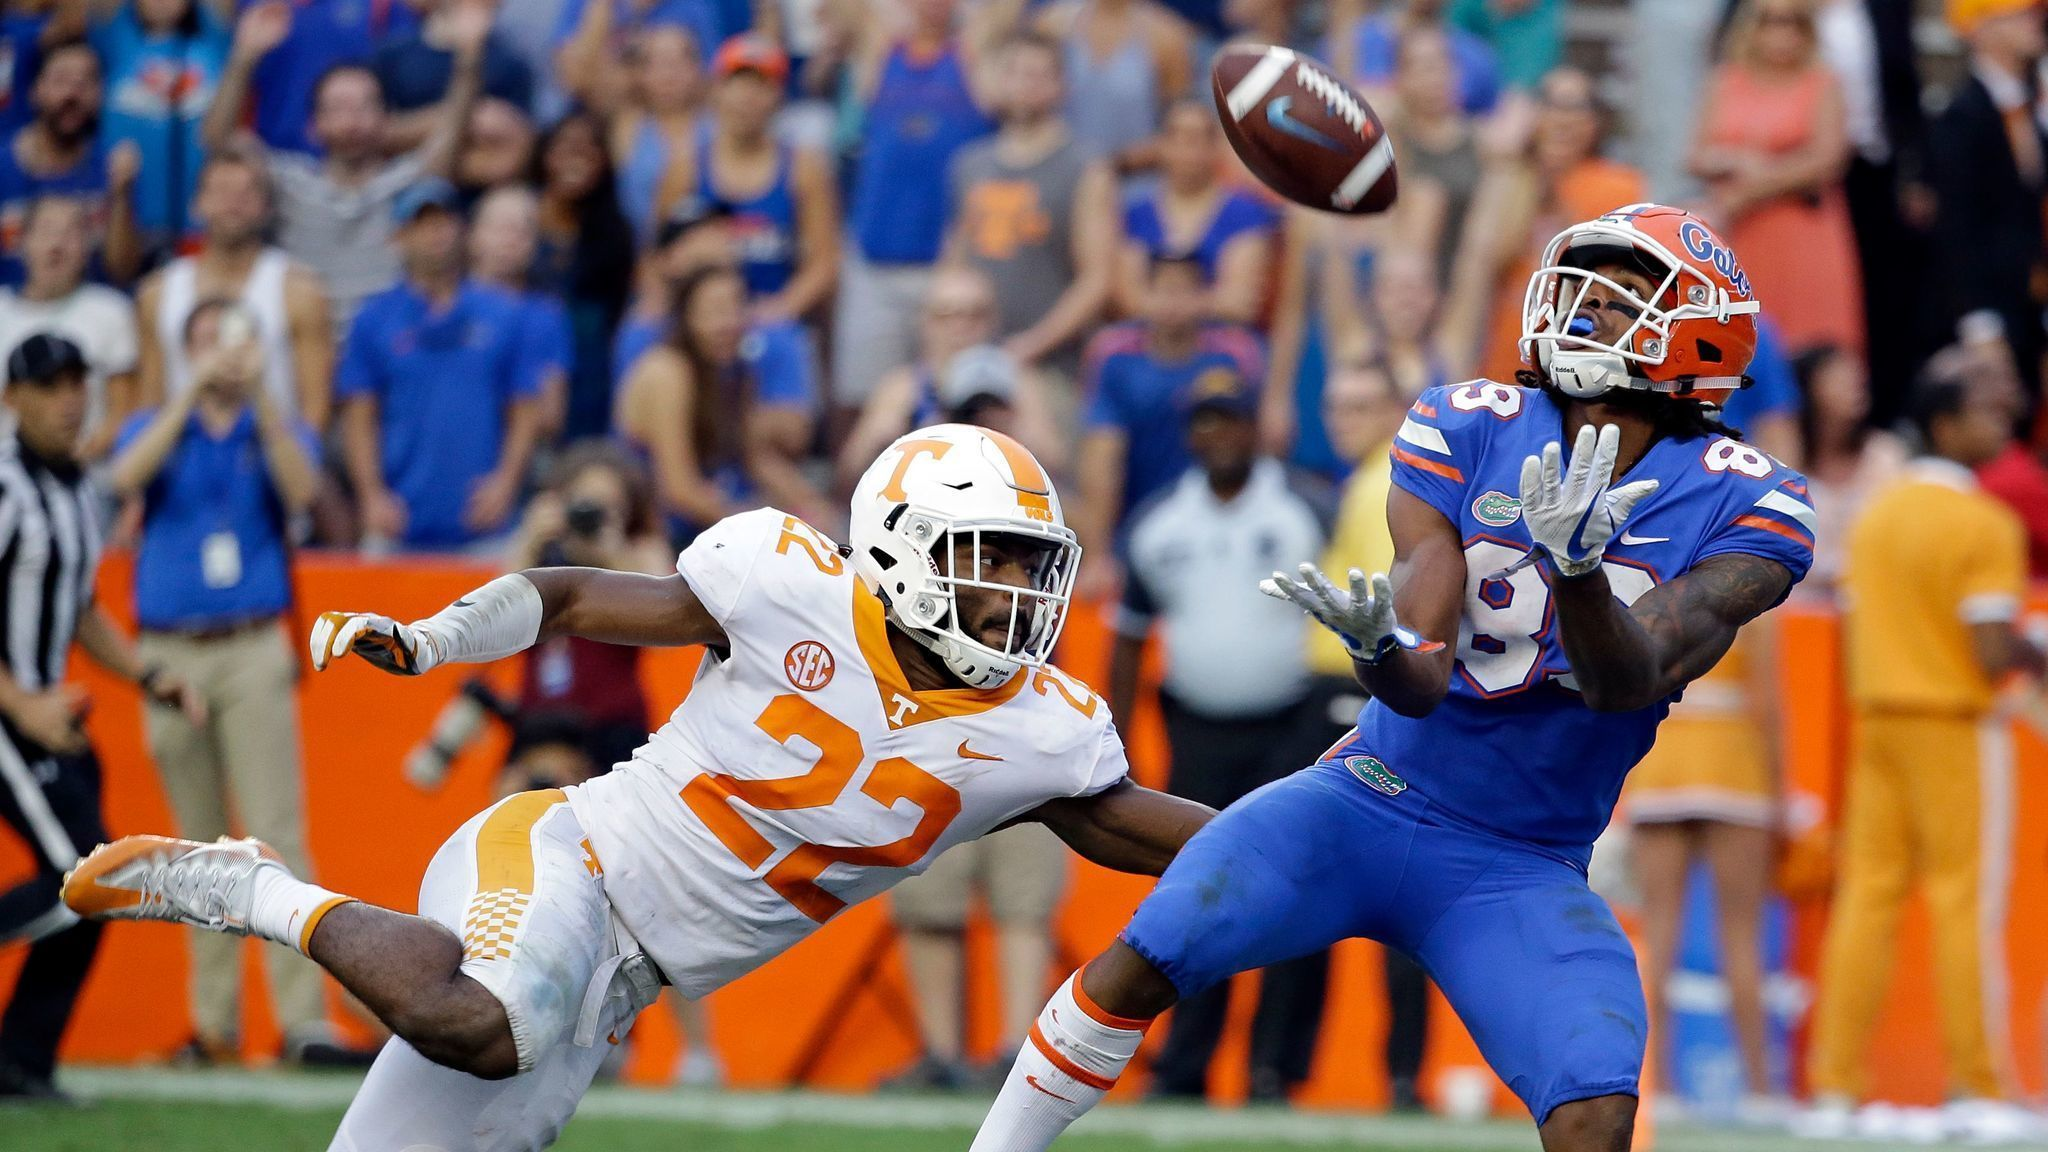 Os-sp-live-updates-florida-tennessee-20170914